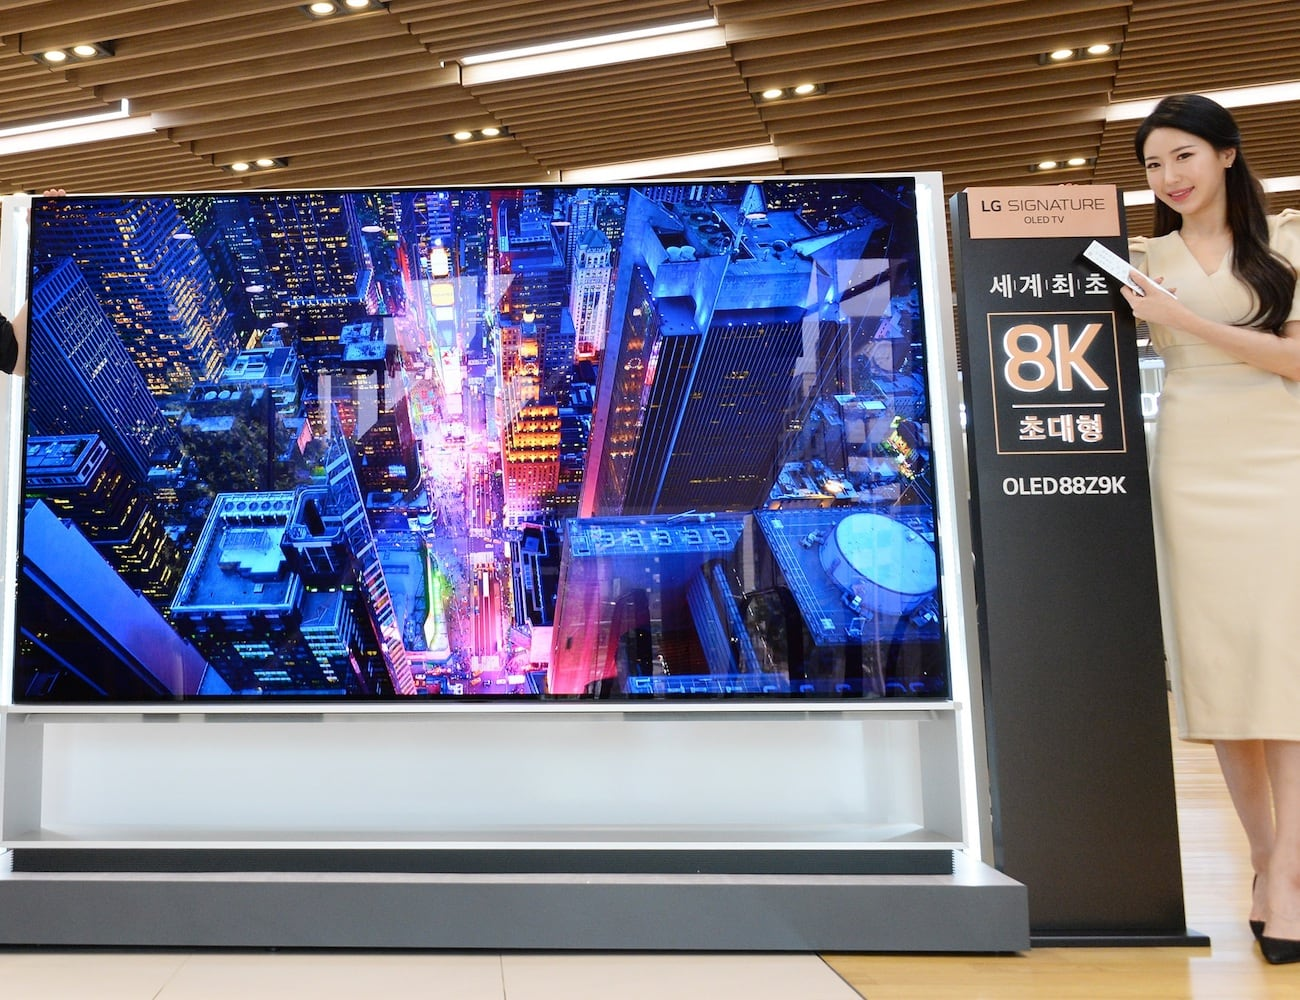 LG Z9 8K Smart OLED TV gives you 88 inches of incredible resolution